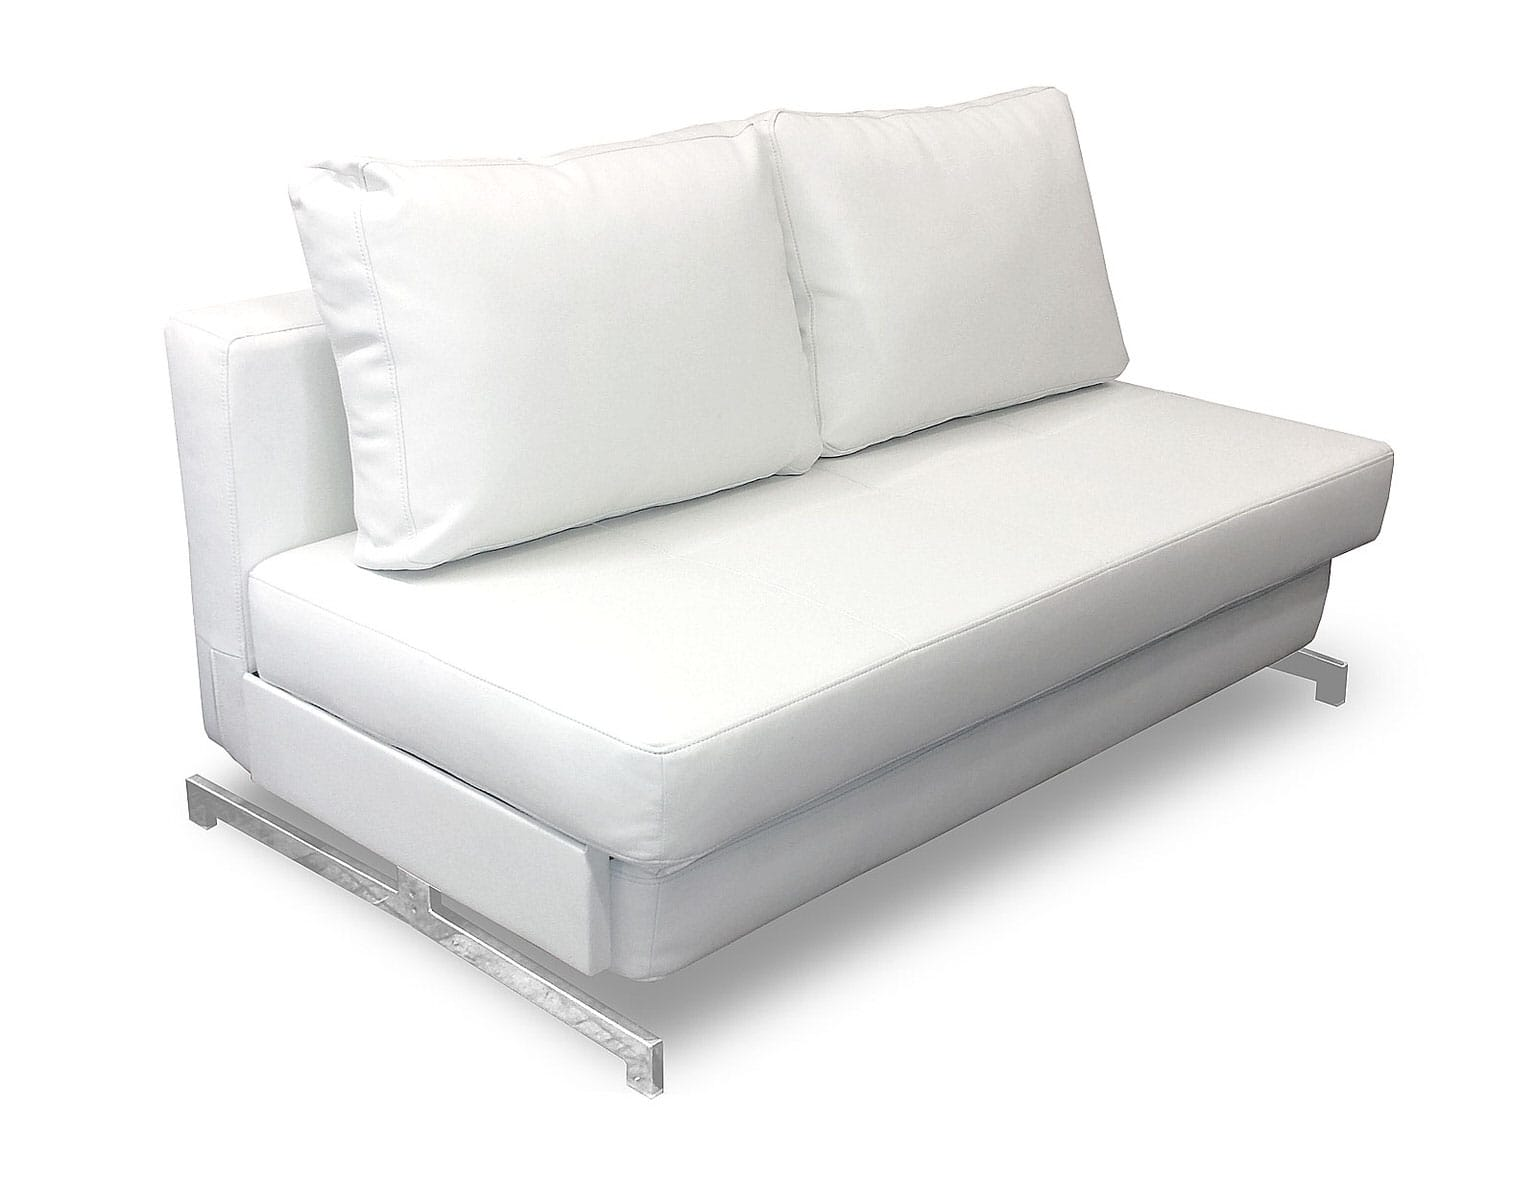 Modern White Leather Textile Queen Sofa Sleeper K43 2 By IDO (Ju0026M Furniture)